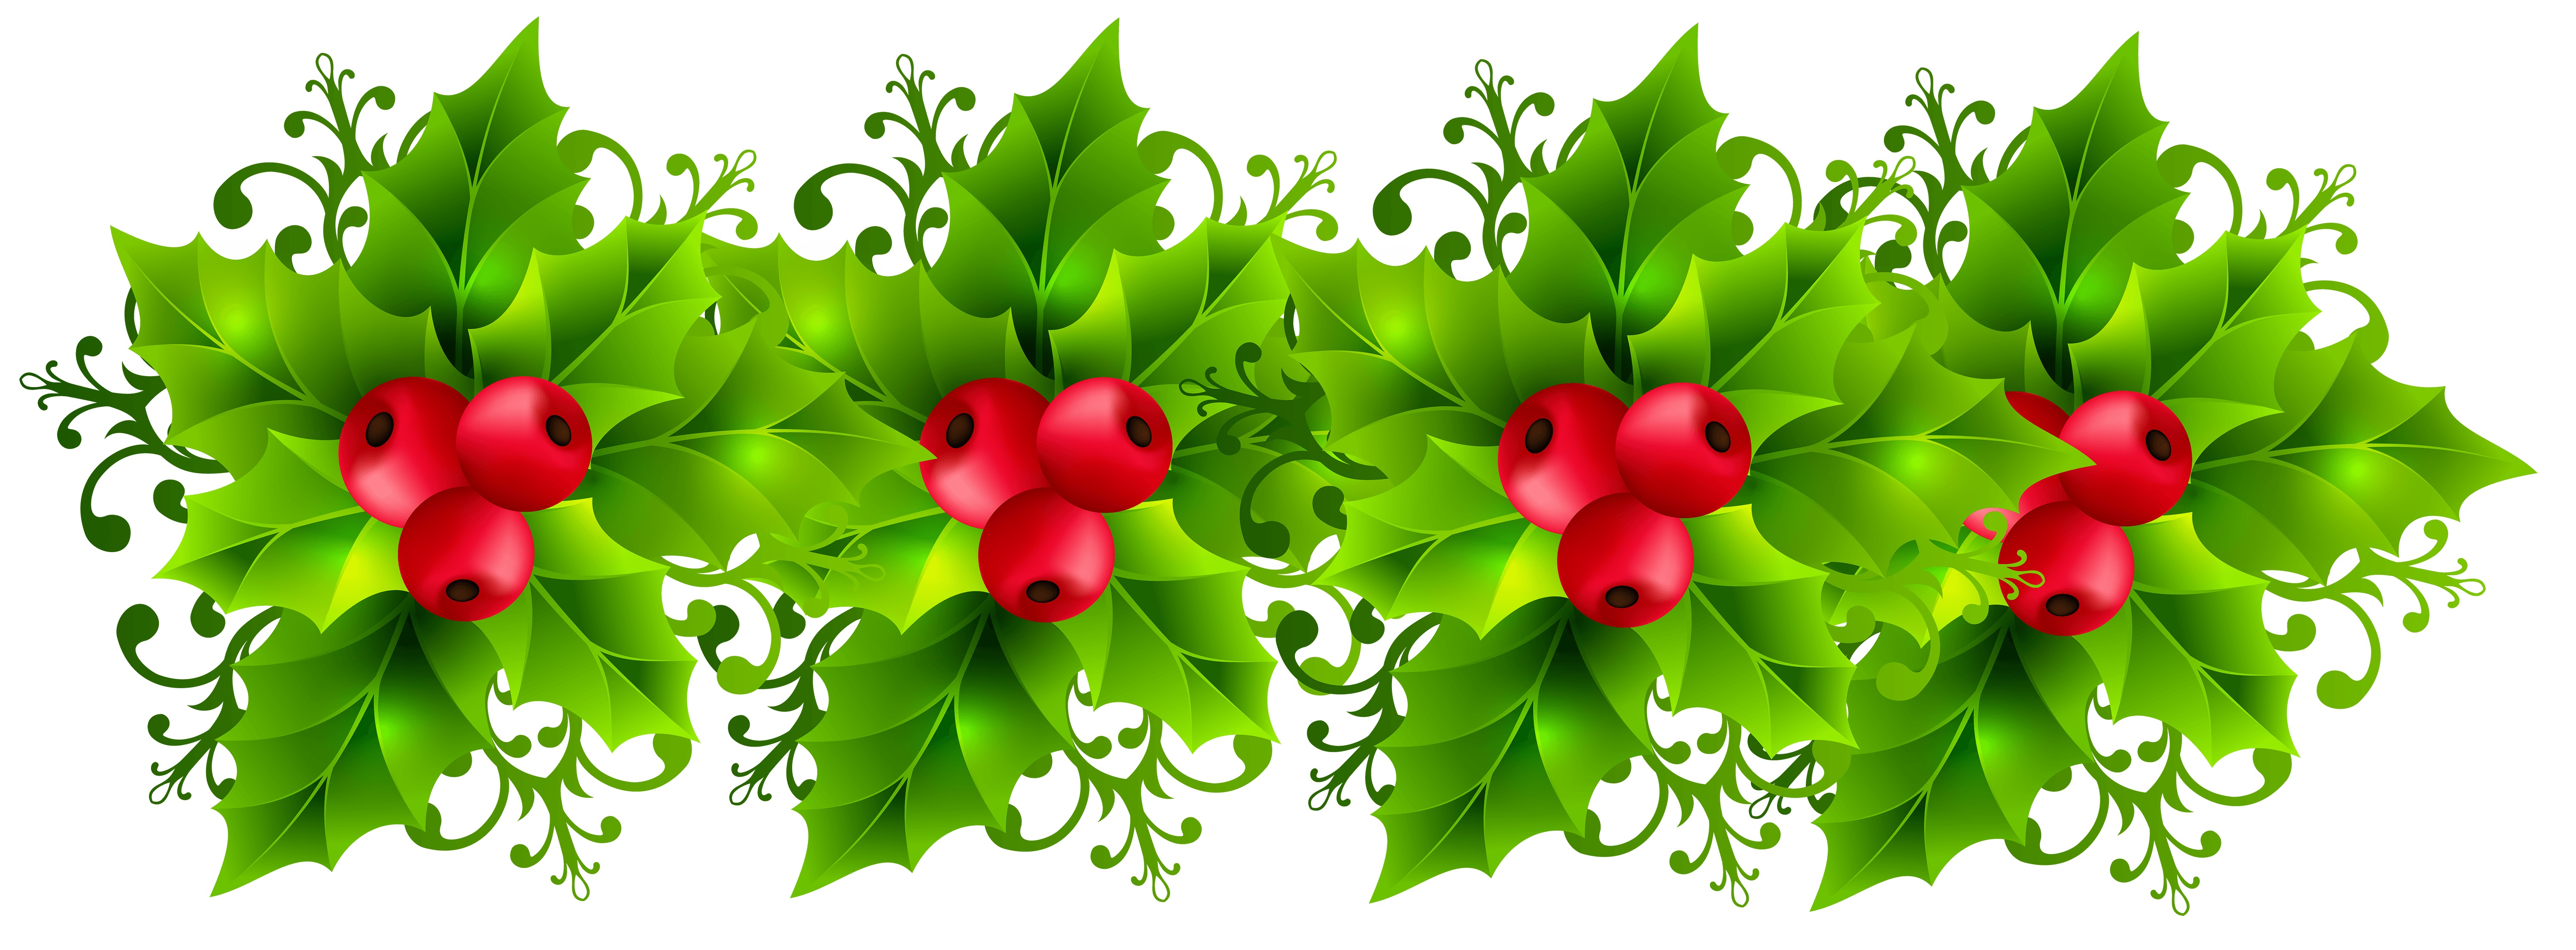 Christmas Holly Png.Christmas Holly Wallpapers Top Free Christmas Holly